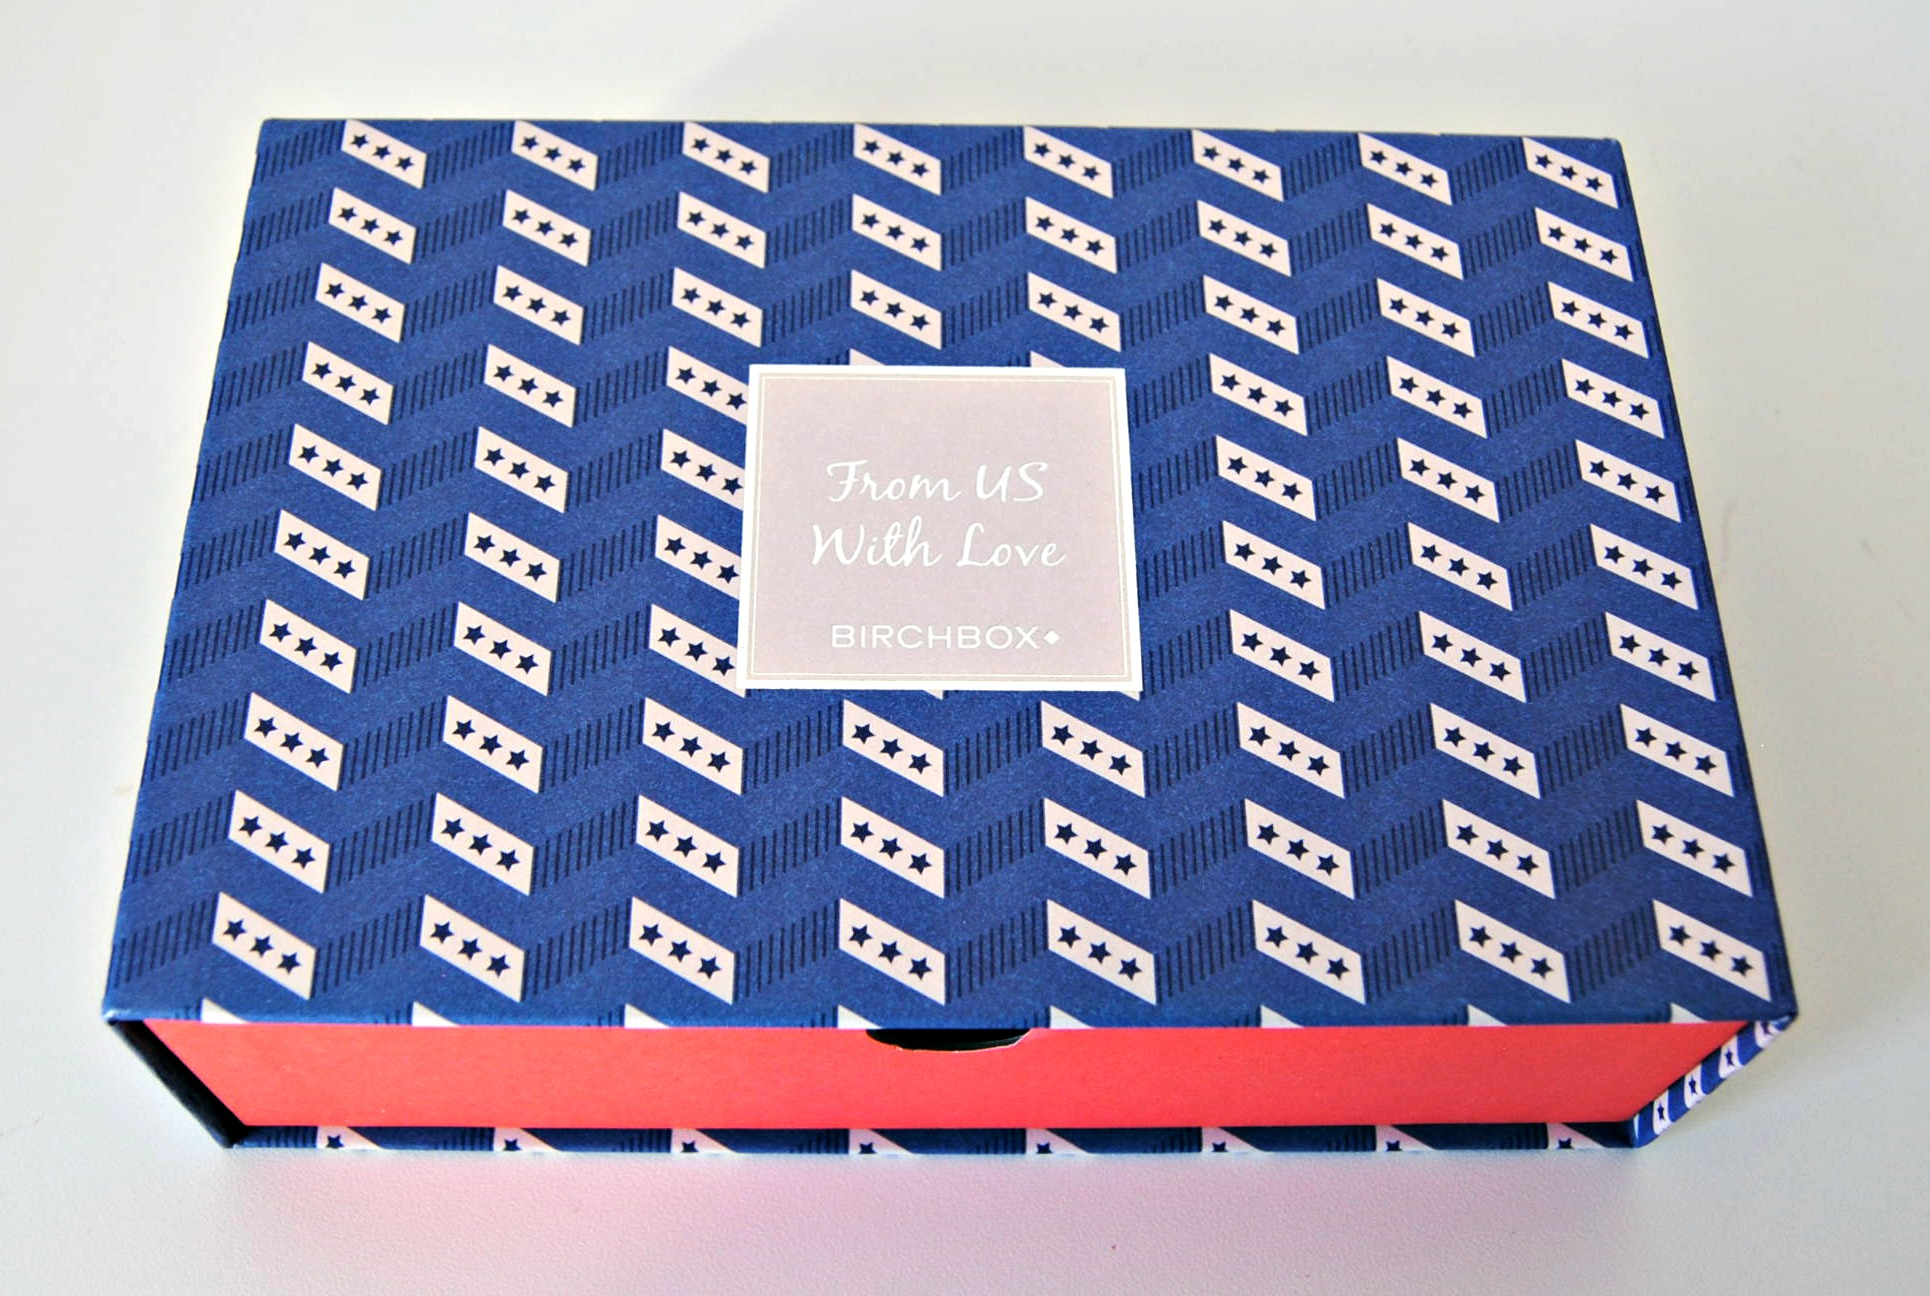 BIRCHBOX from US with love 🇺🇸 - Septembre